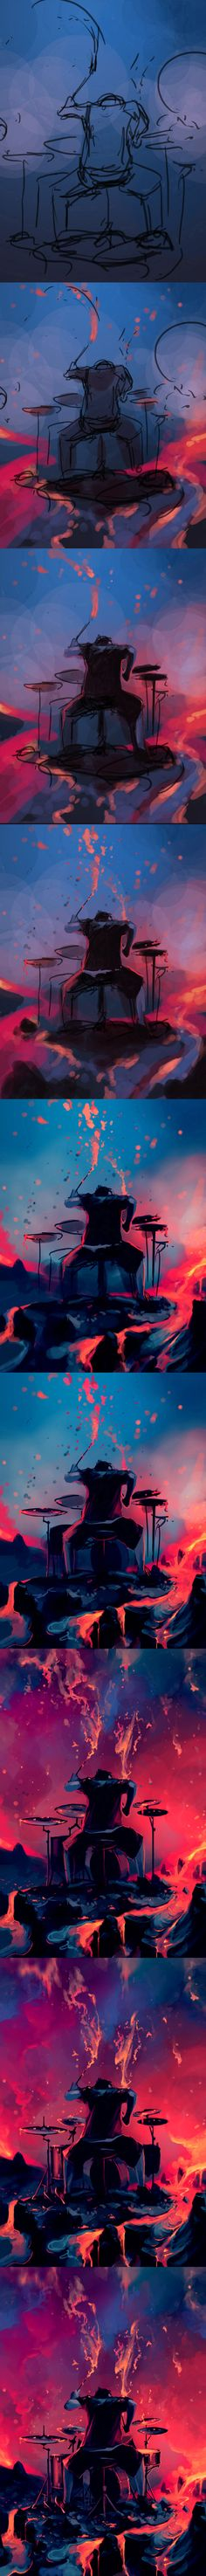 WIP Drums and rage by AquaSixio.deviantart.com on @deviantART